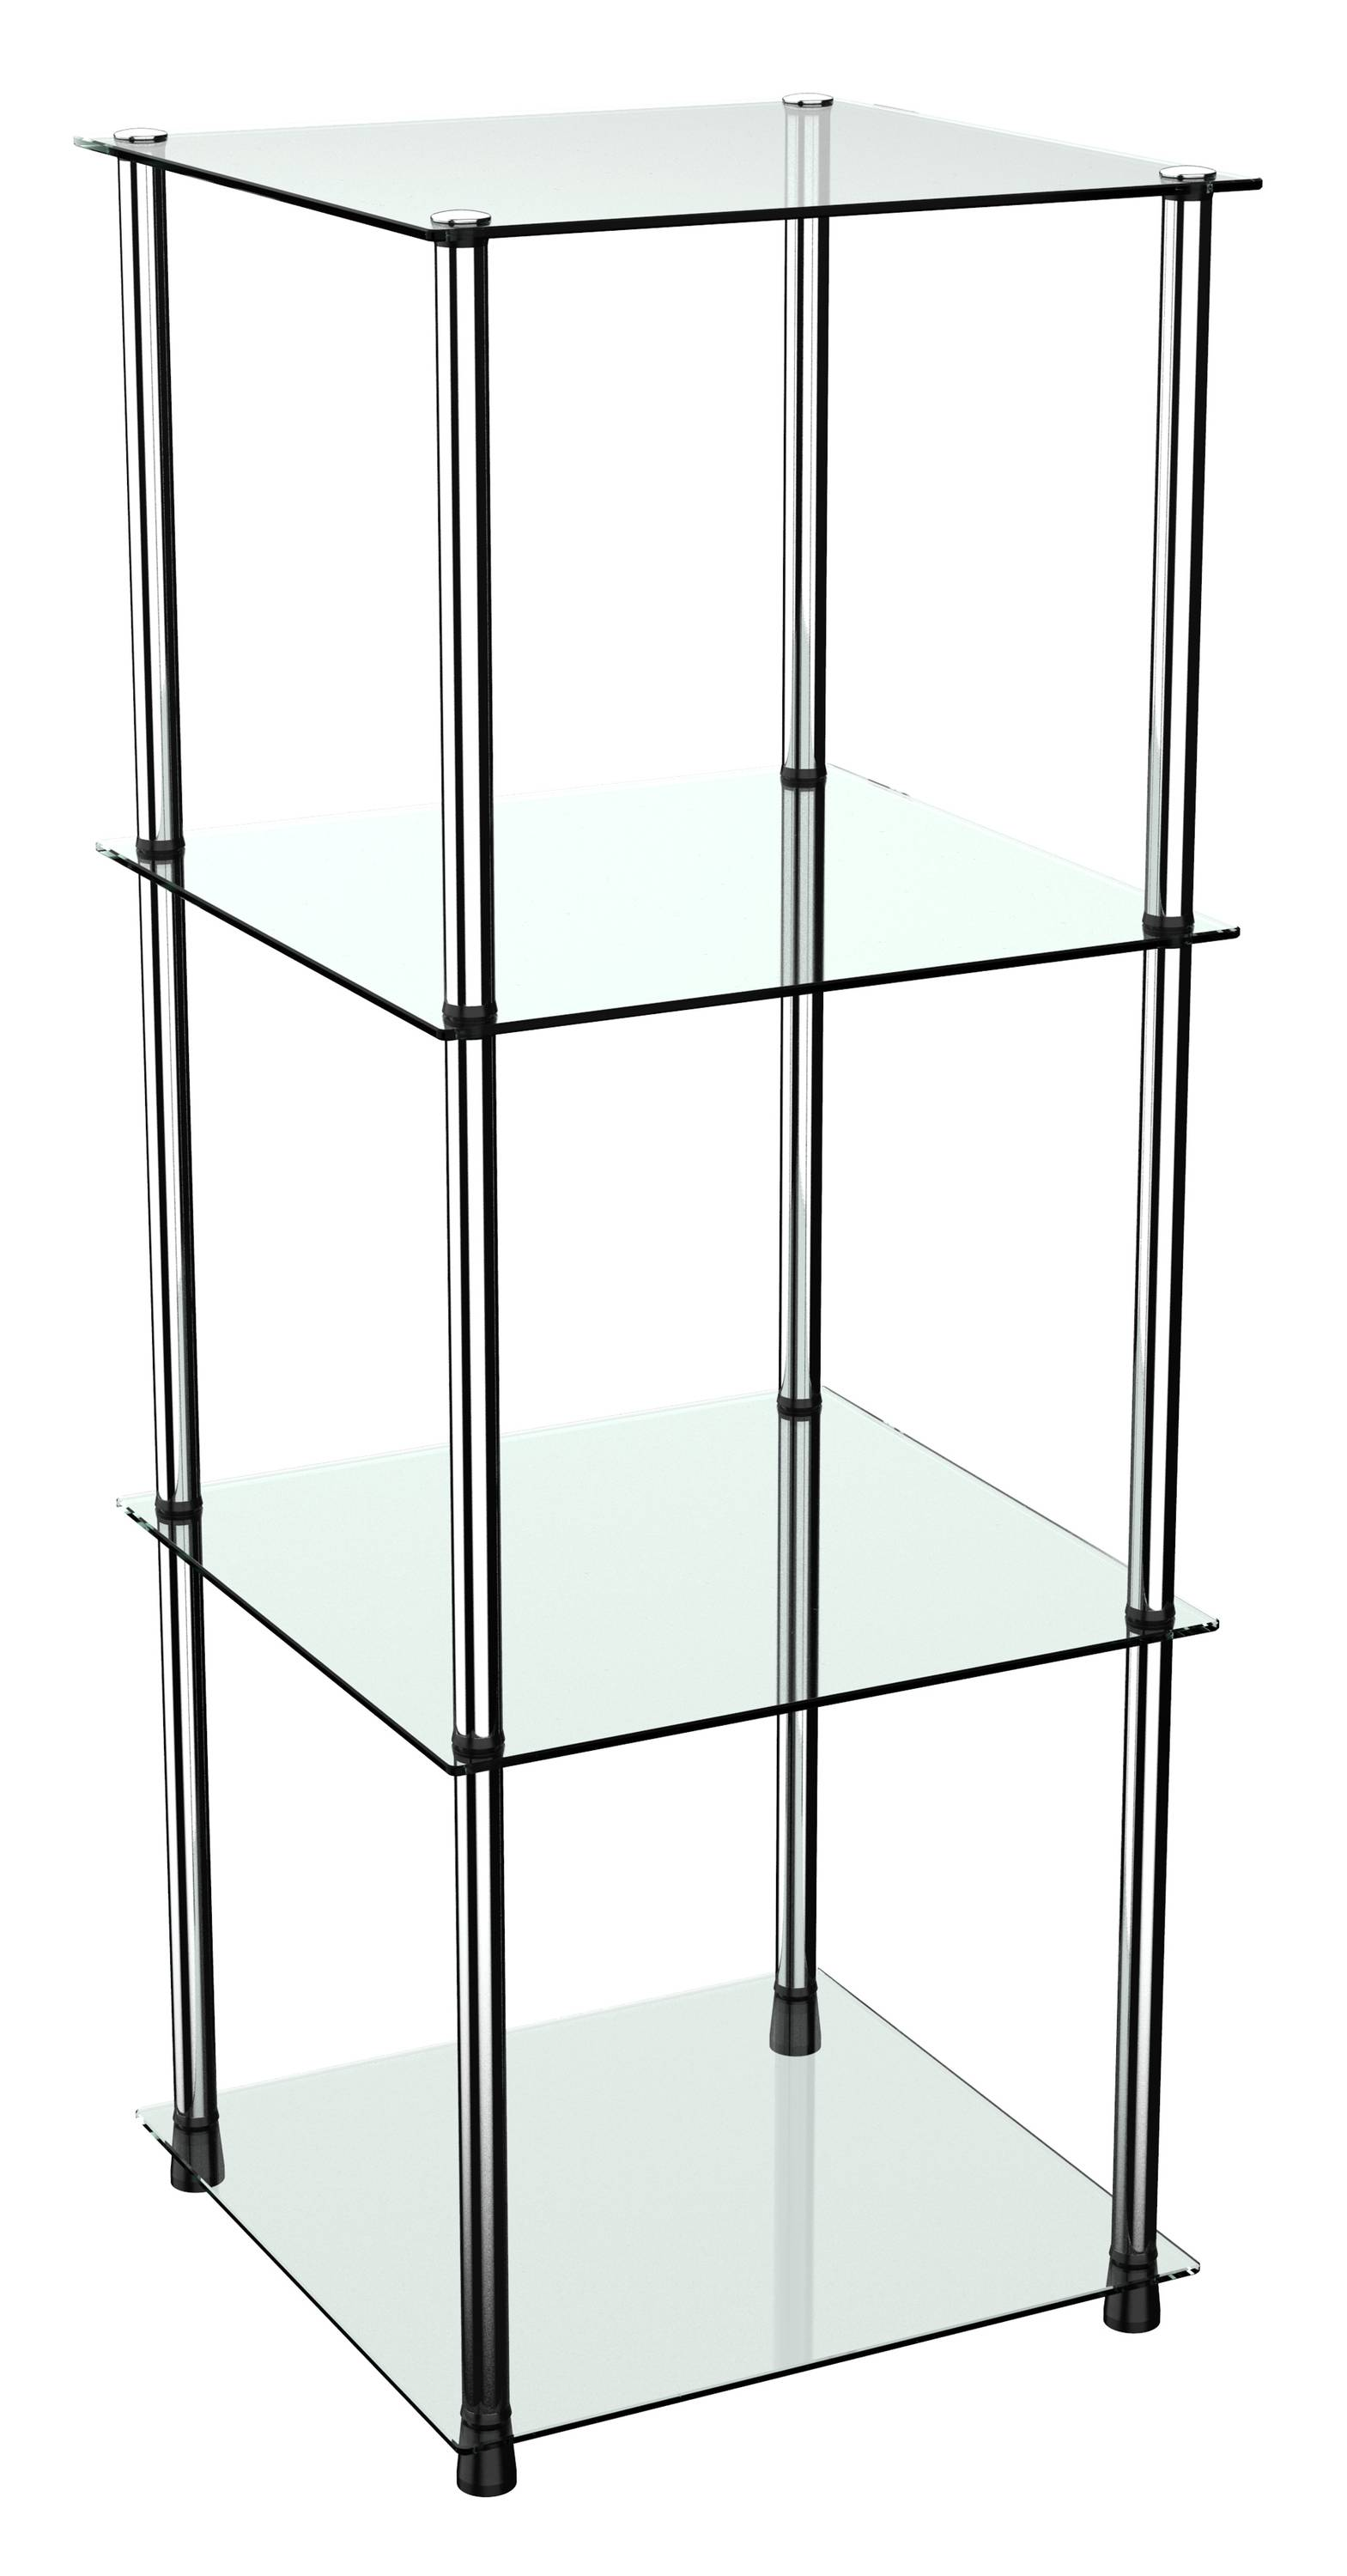 Badregal Mit Glas Standregal Wm503 Mit Glas Ablagen Glasregal